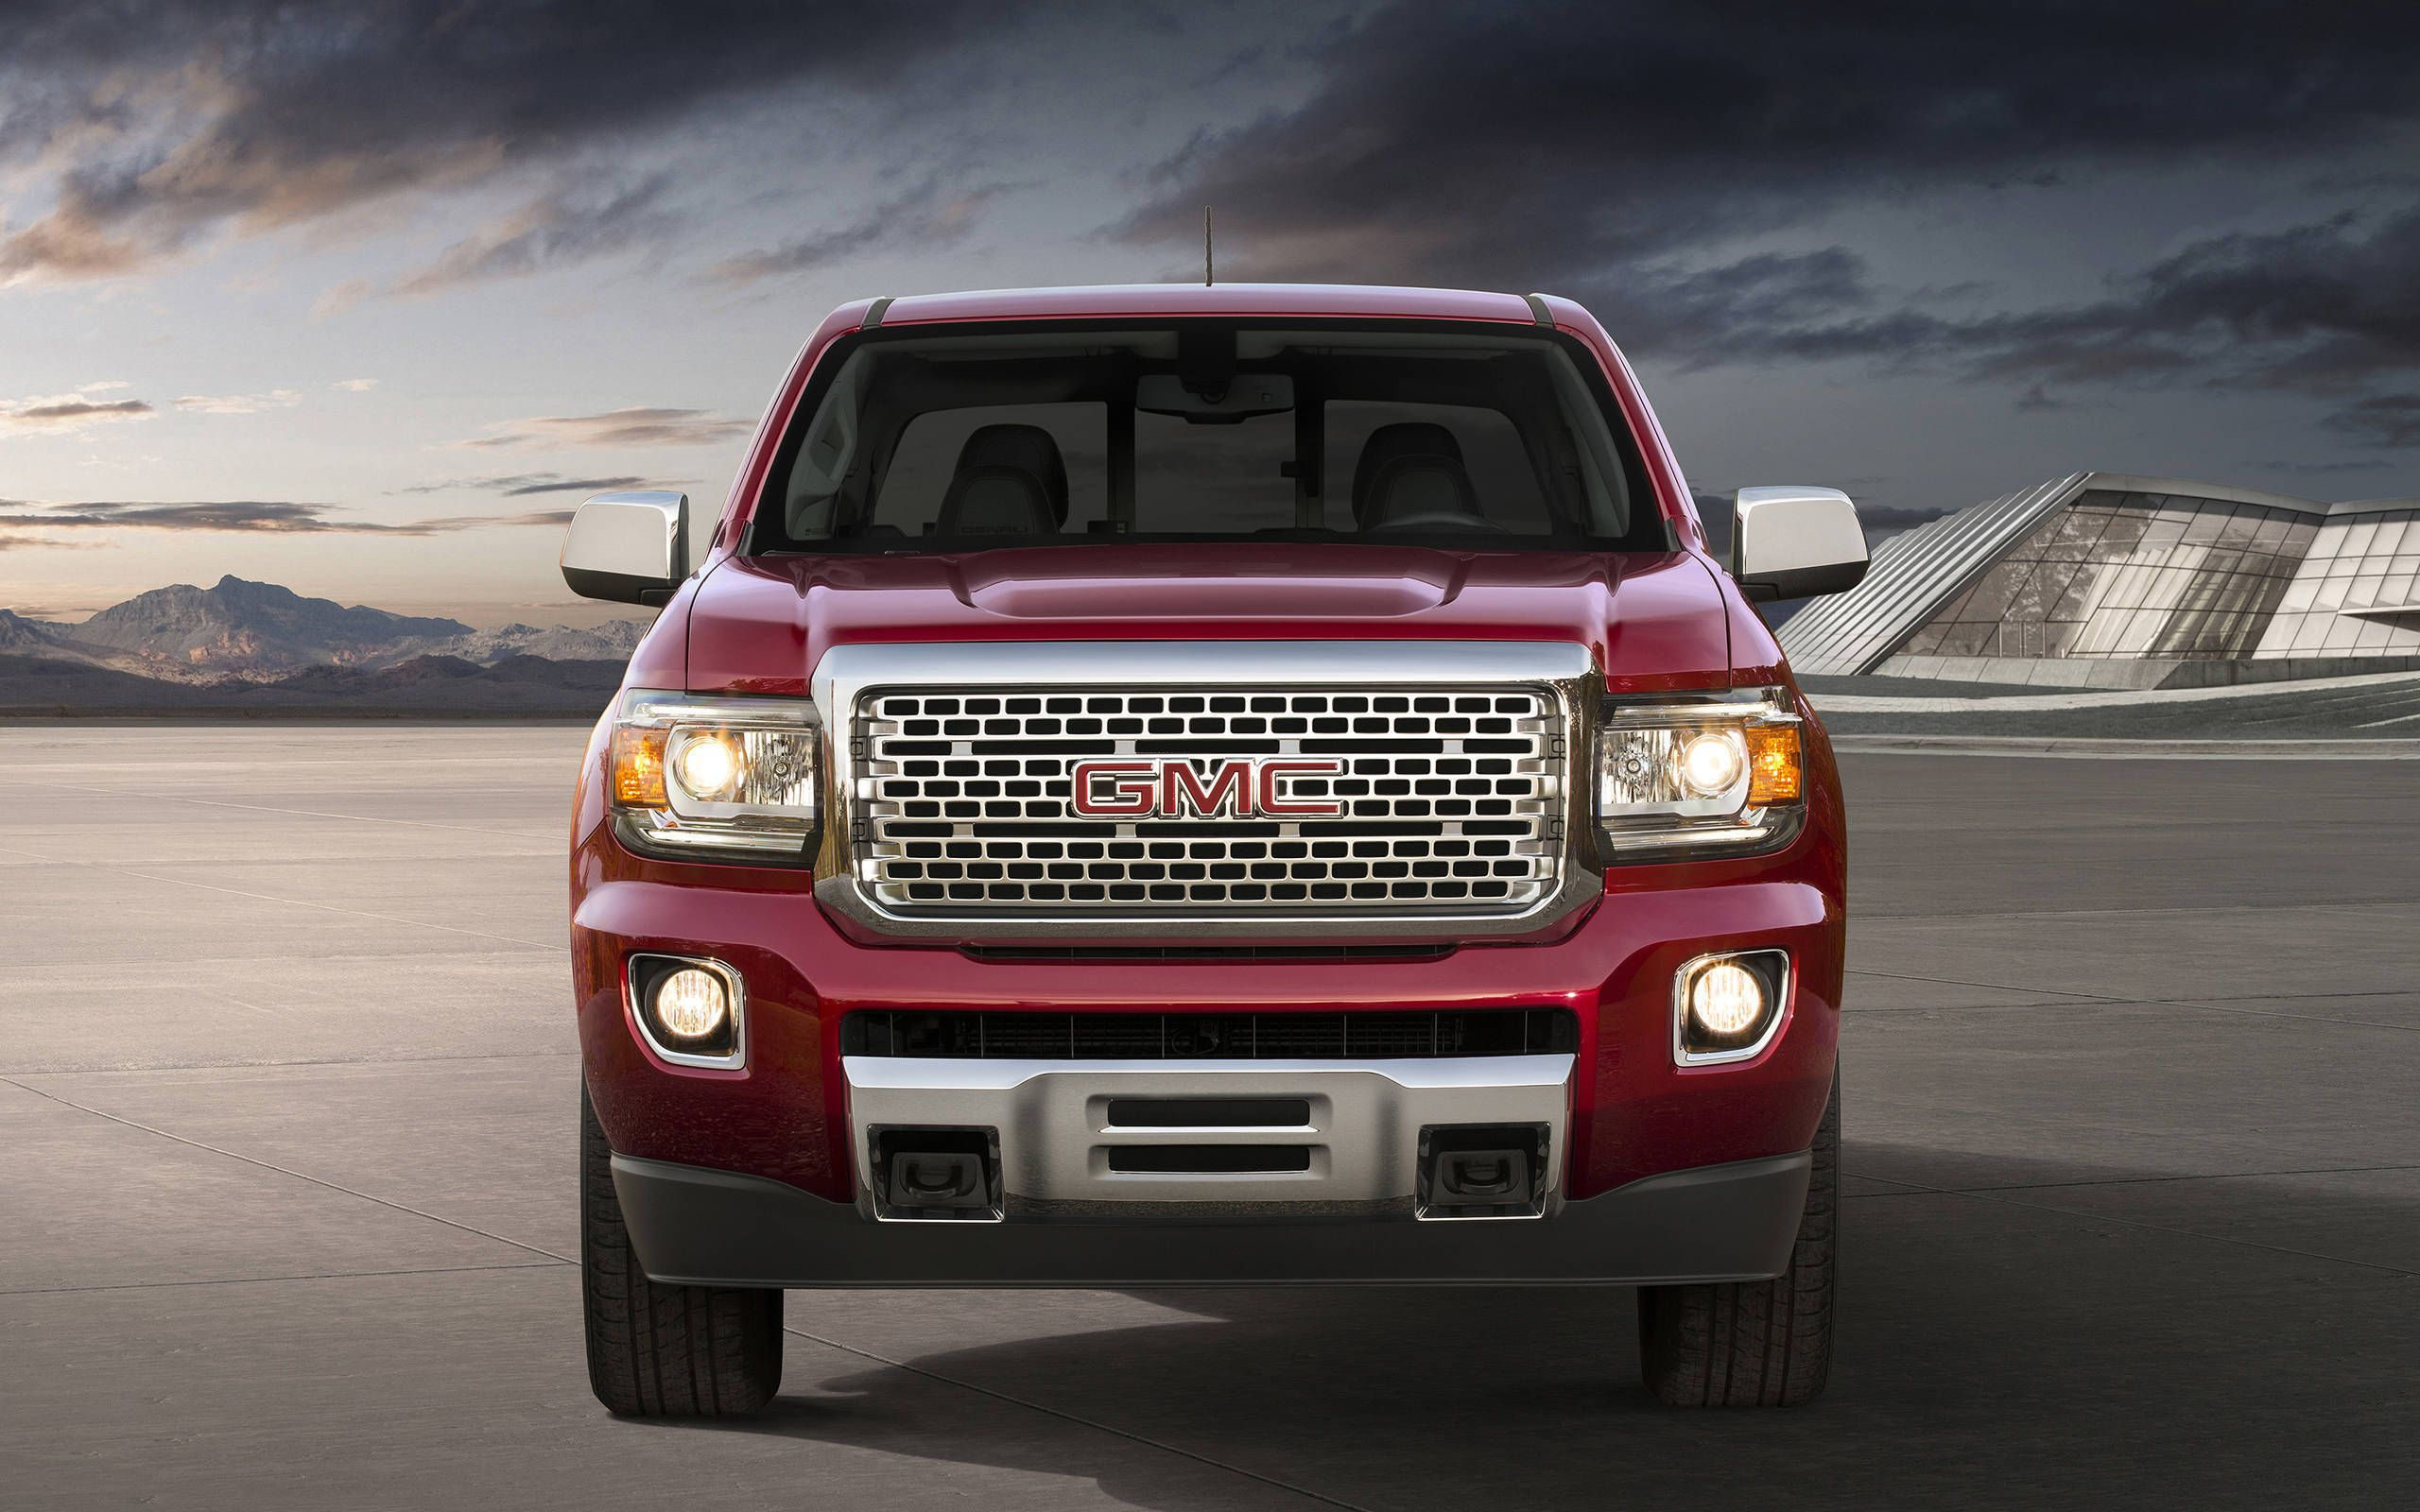 2017 Gmc Canyon Denali Review Right Sized But Where S The Value